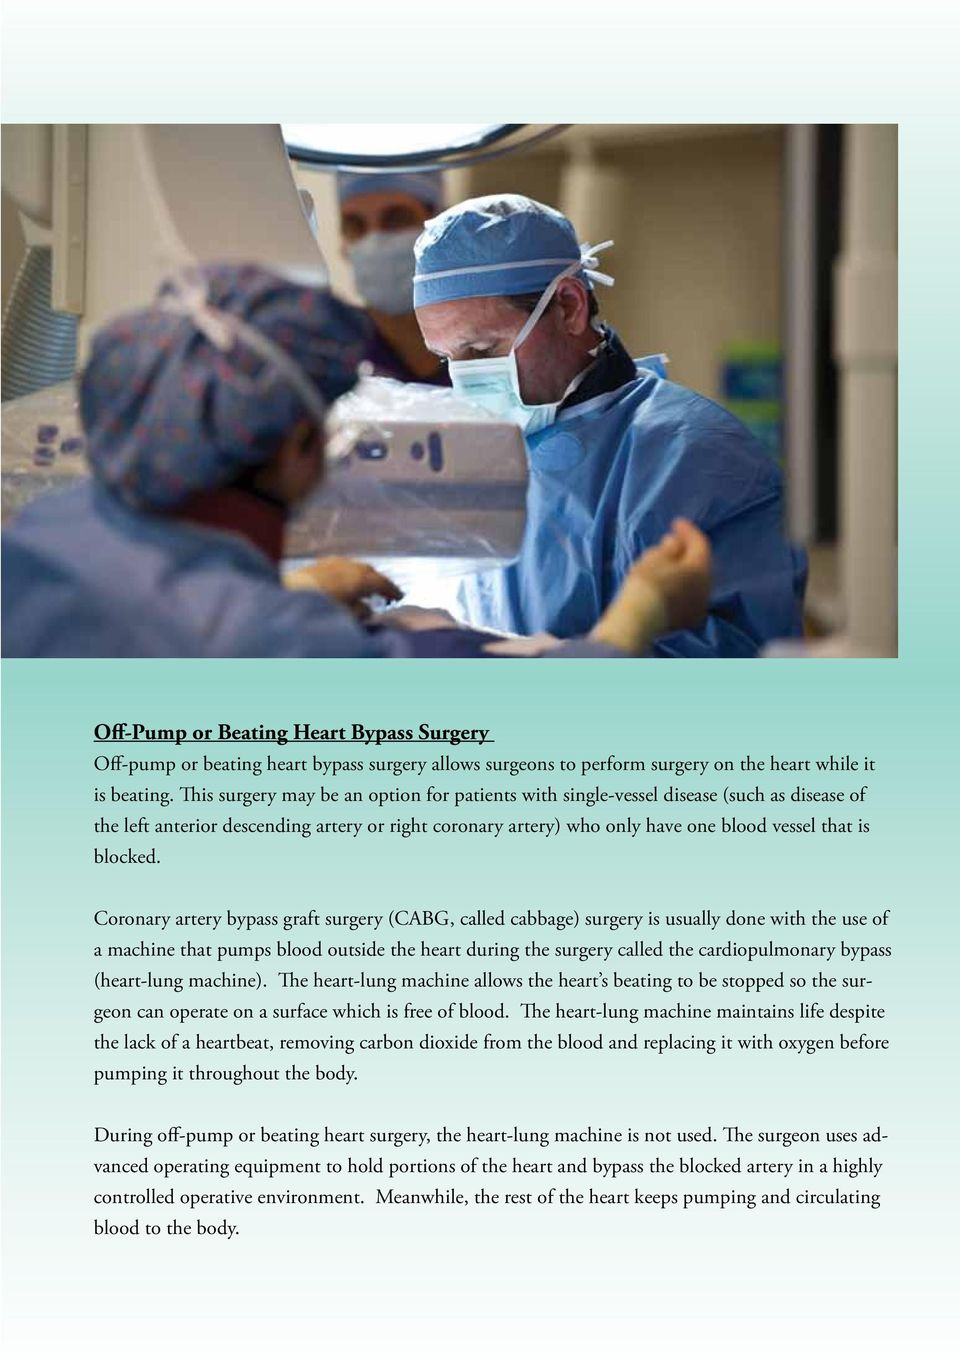 Coronary artery bypass graft surgery (CABG, called cabbage) surgery is usually done with the use of a machine that pumps blood outside the heart during the surgery called the cardiopulmonary bypass